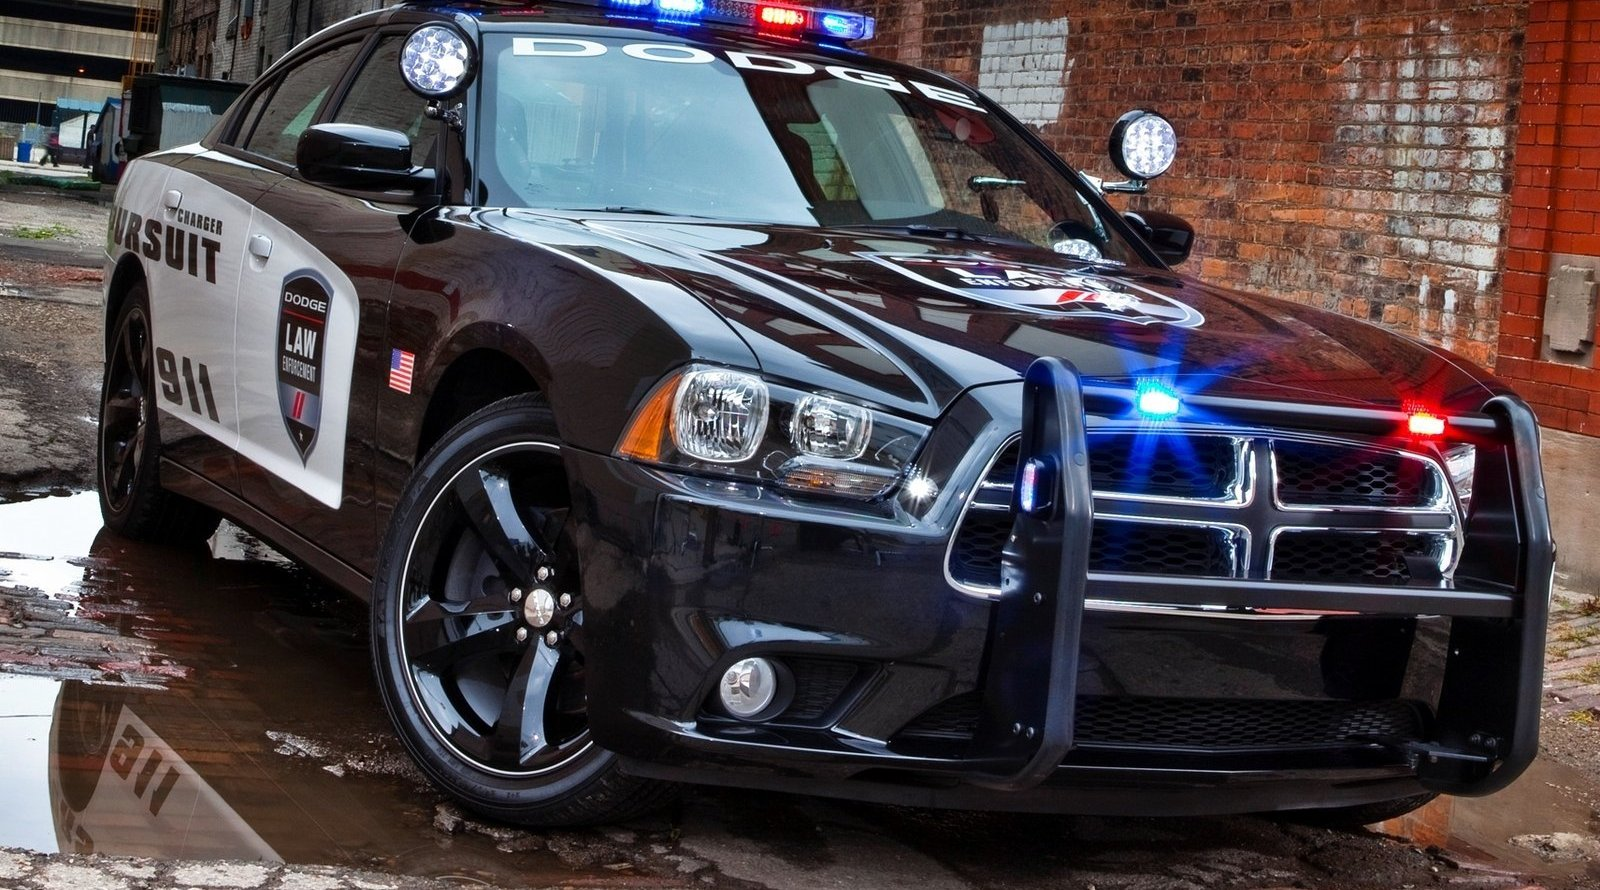 2014-Dodge-Charger-Pursuit-3 - NO Car NO Fun! Muscle Cars and Power ...